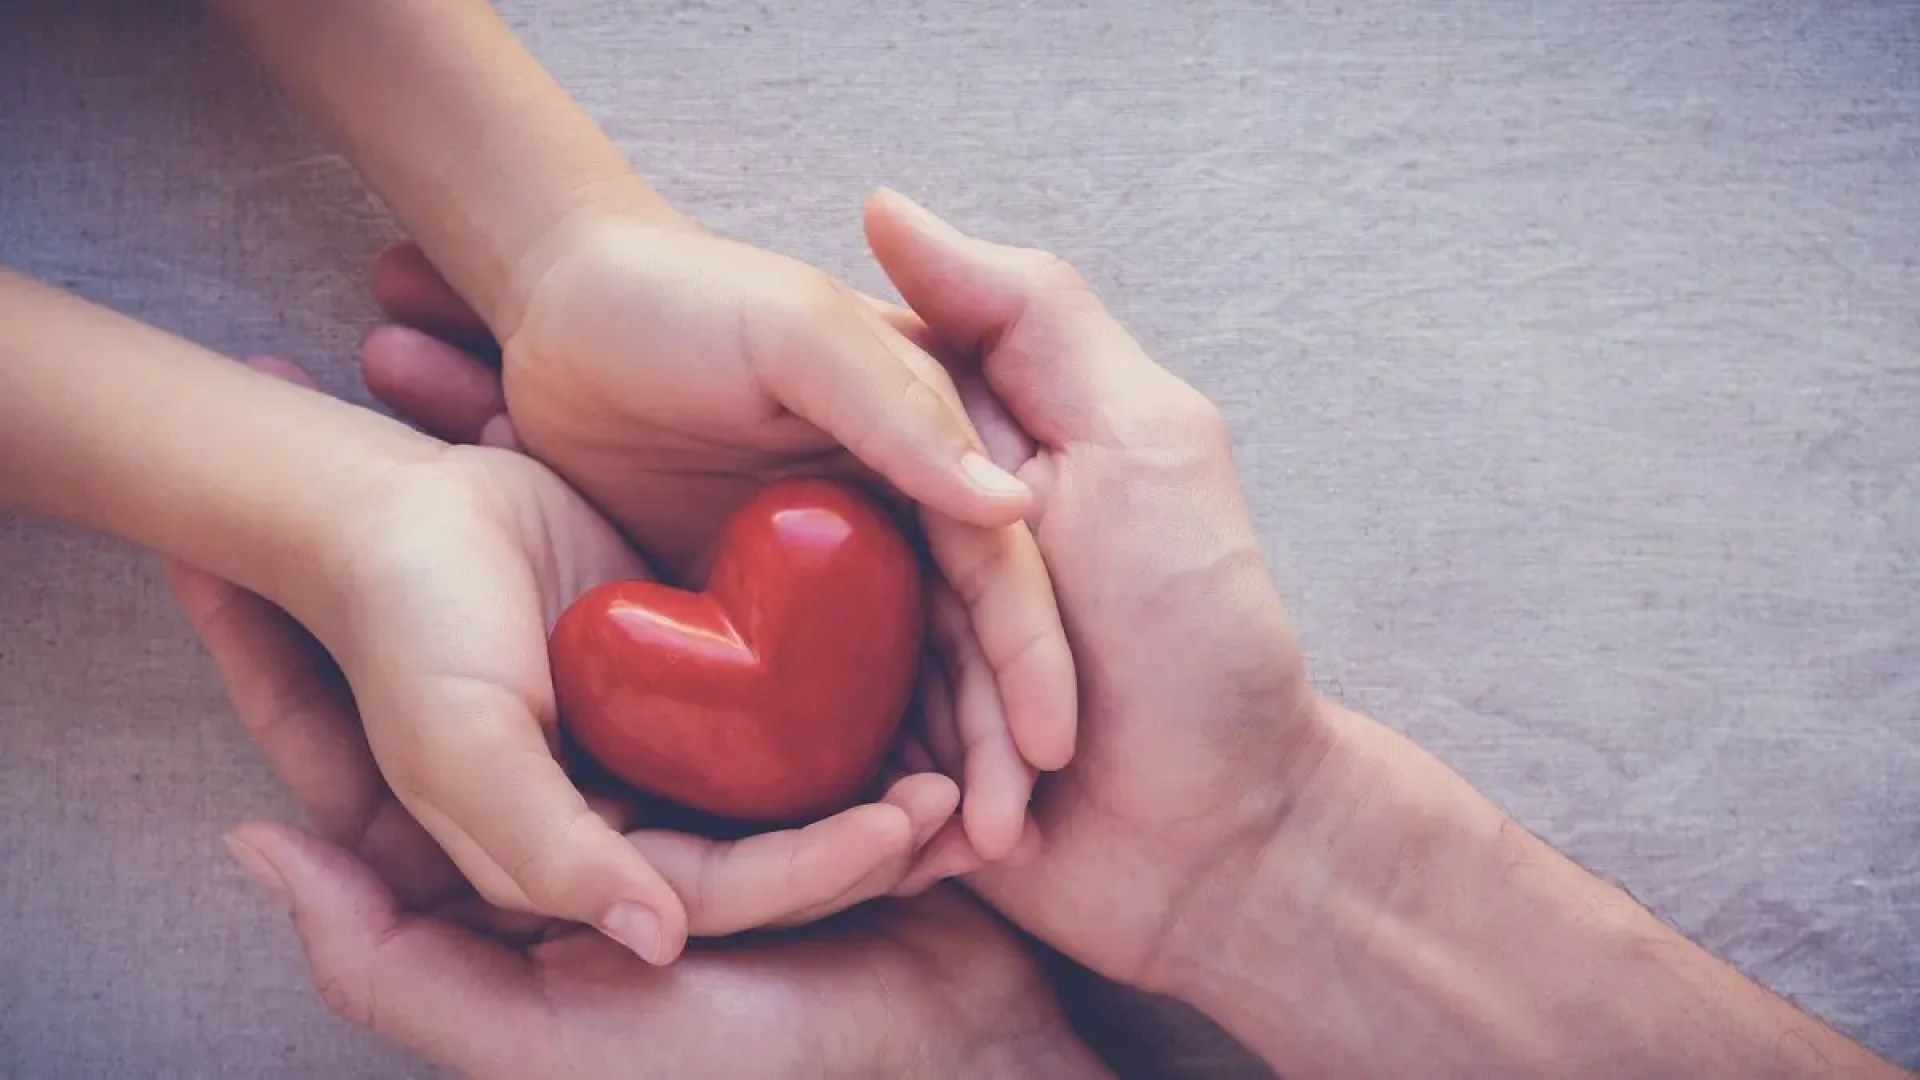 A child and an adult hold a heart in their hands.